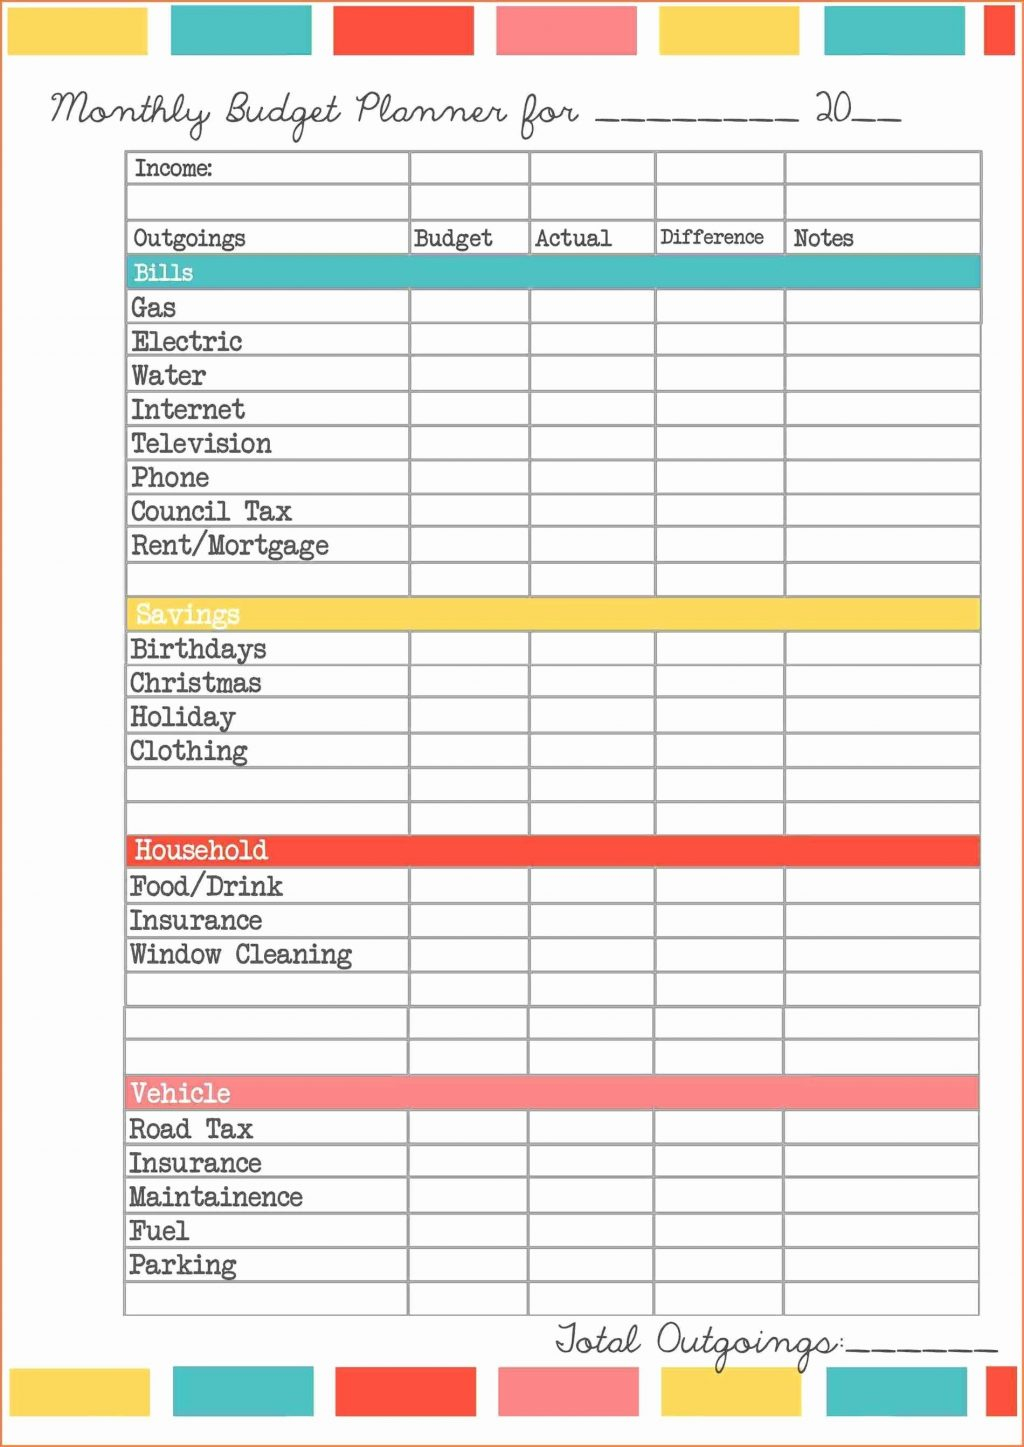 Accounting Spreadsheet Templates For Small Business Free Downloads Intended For Small Business Bookkeeping Spreadsheet